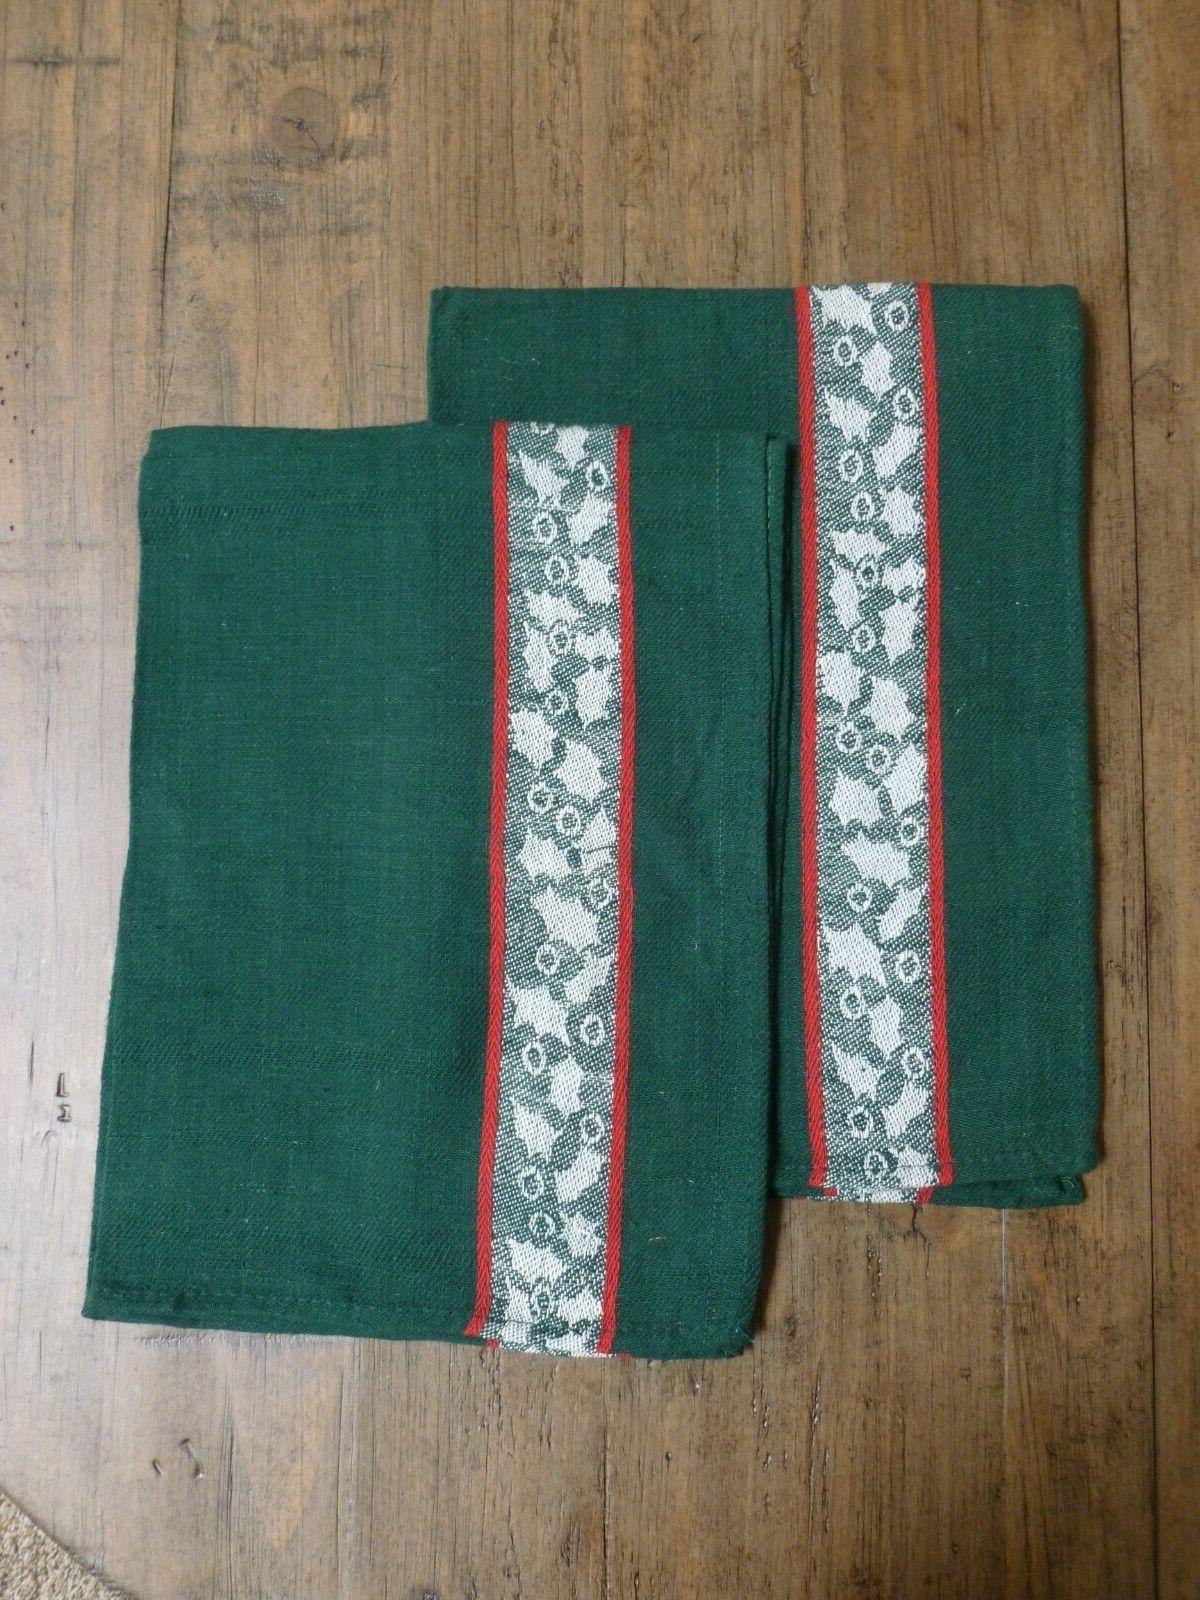 2 green kitchen towels holly leaves 26